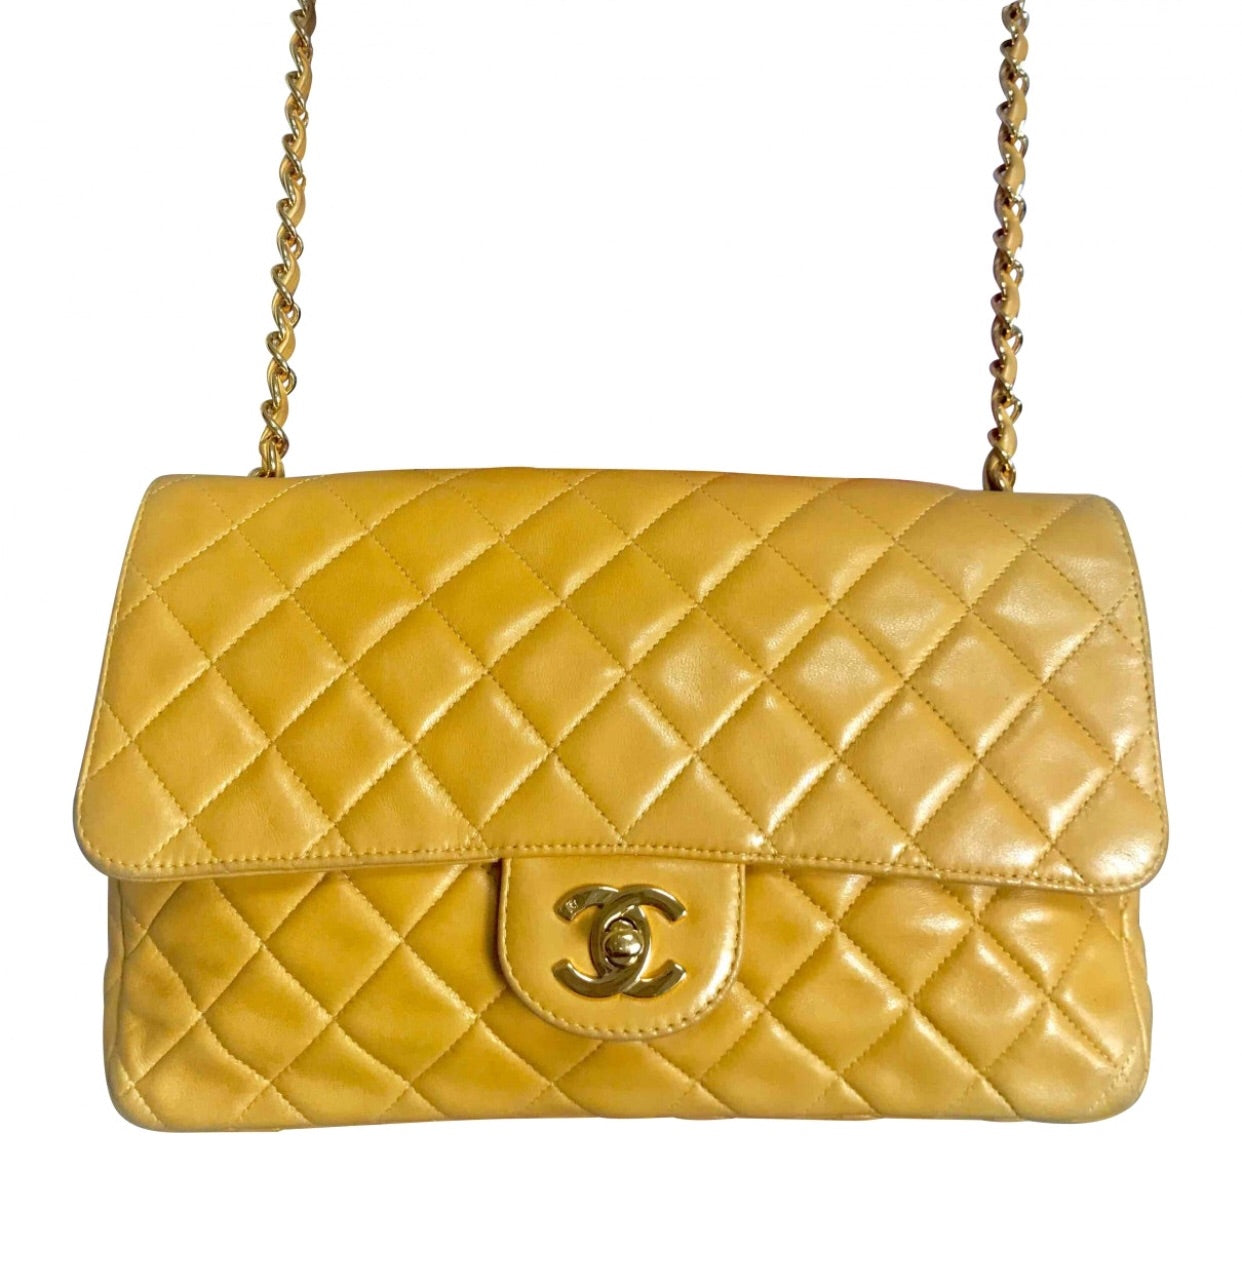 5f6488780e50 Vintage Chanel classic 2.55 rare yellow color soft lamb leather chain  shoulder bag with golden CC